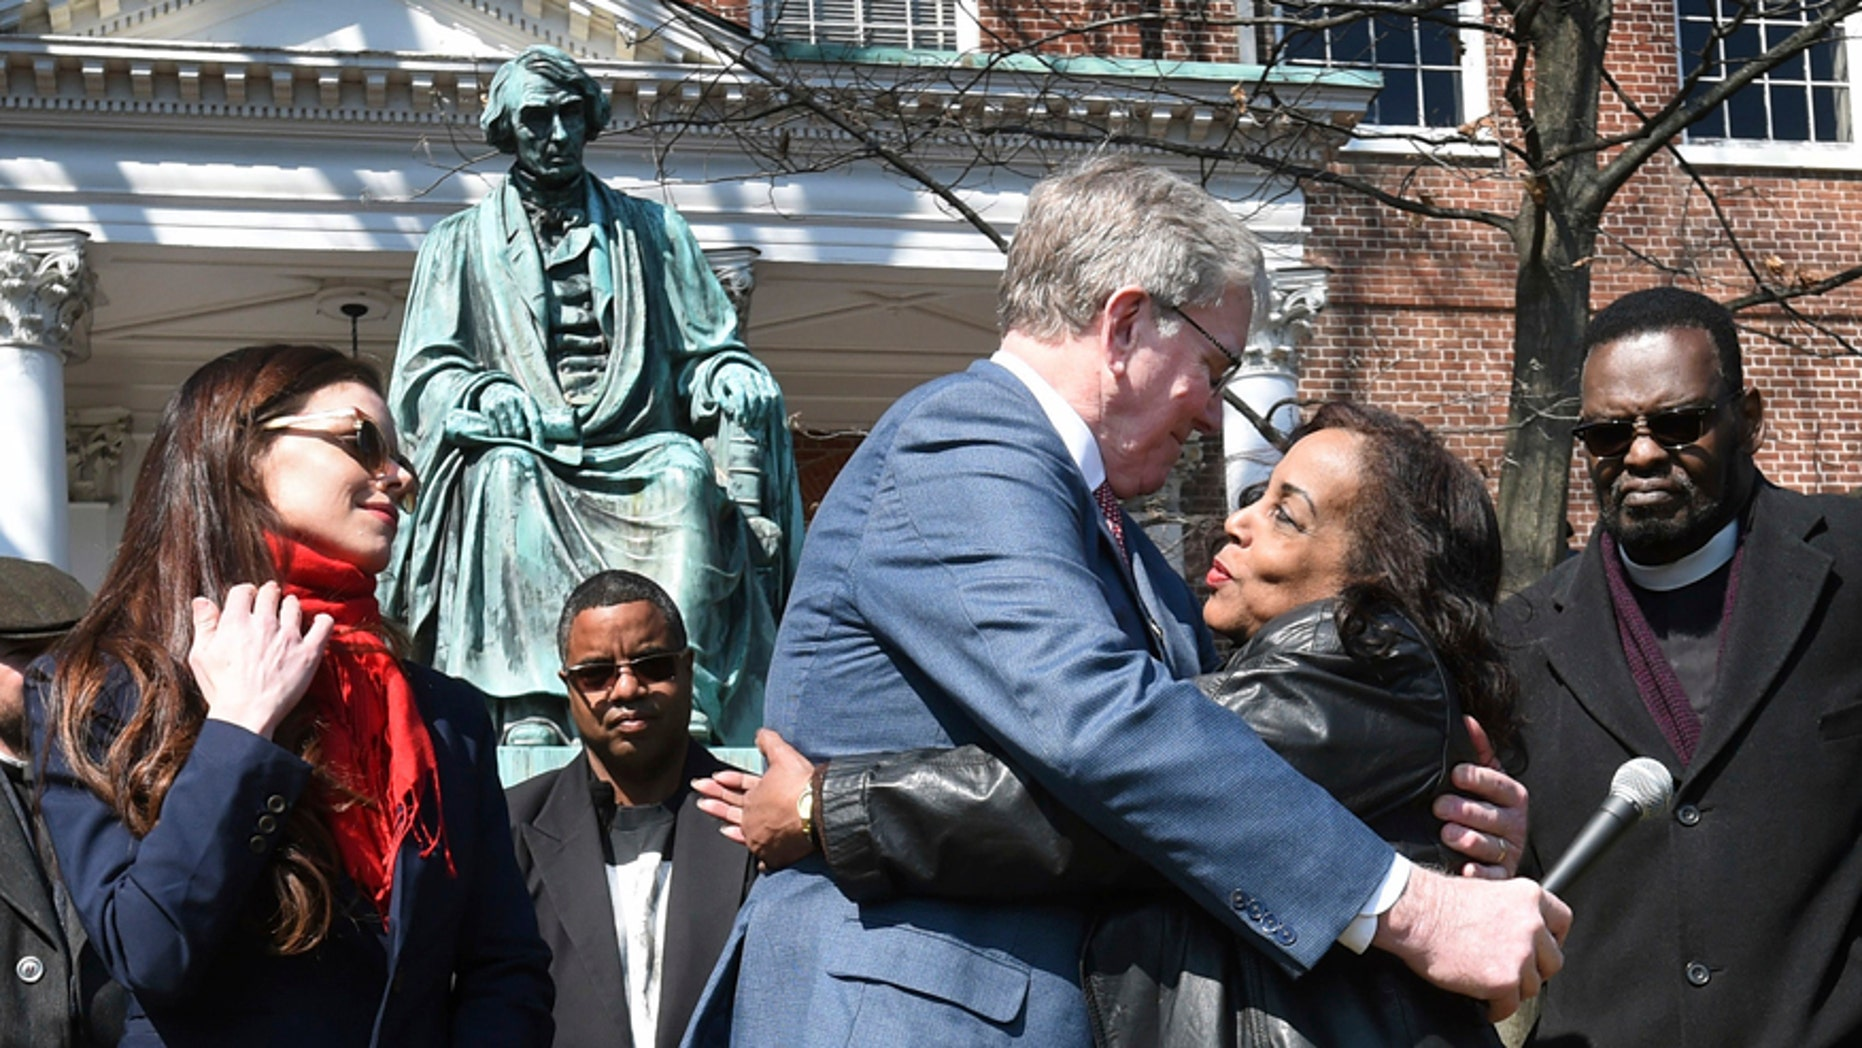 Lynne Jackson, a descendant of Dred Scott, right, hugs Charles Taney III, a descendant of U.S. Supreme Court Chief Justice Roger Taney on the 160th anniversary of the Dred Scott decision in front of the Maryland State House, Monday, March 6, 2017, in Annapolis, Md.